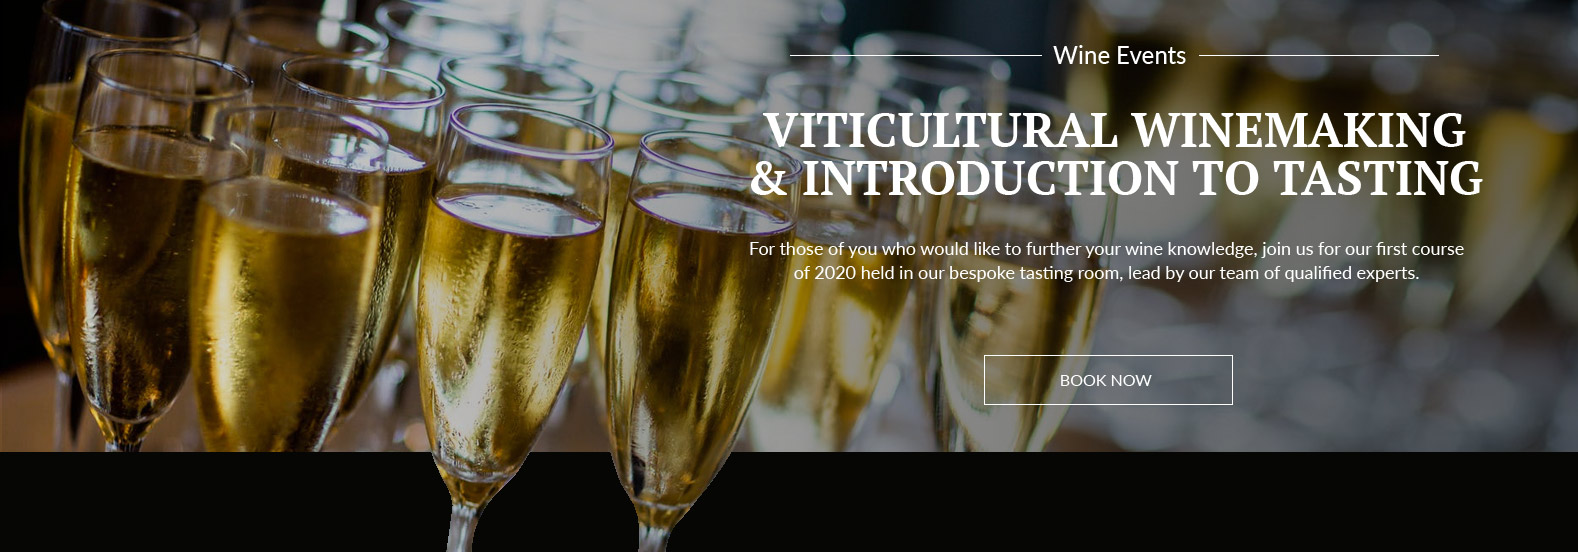 Viticultural Winemaking Event